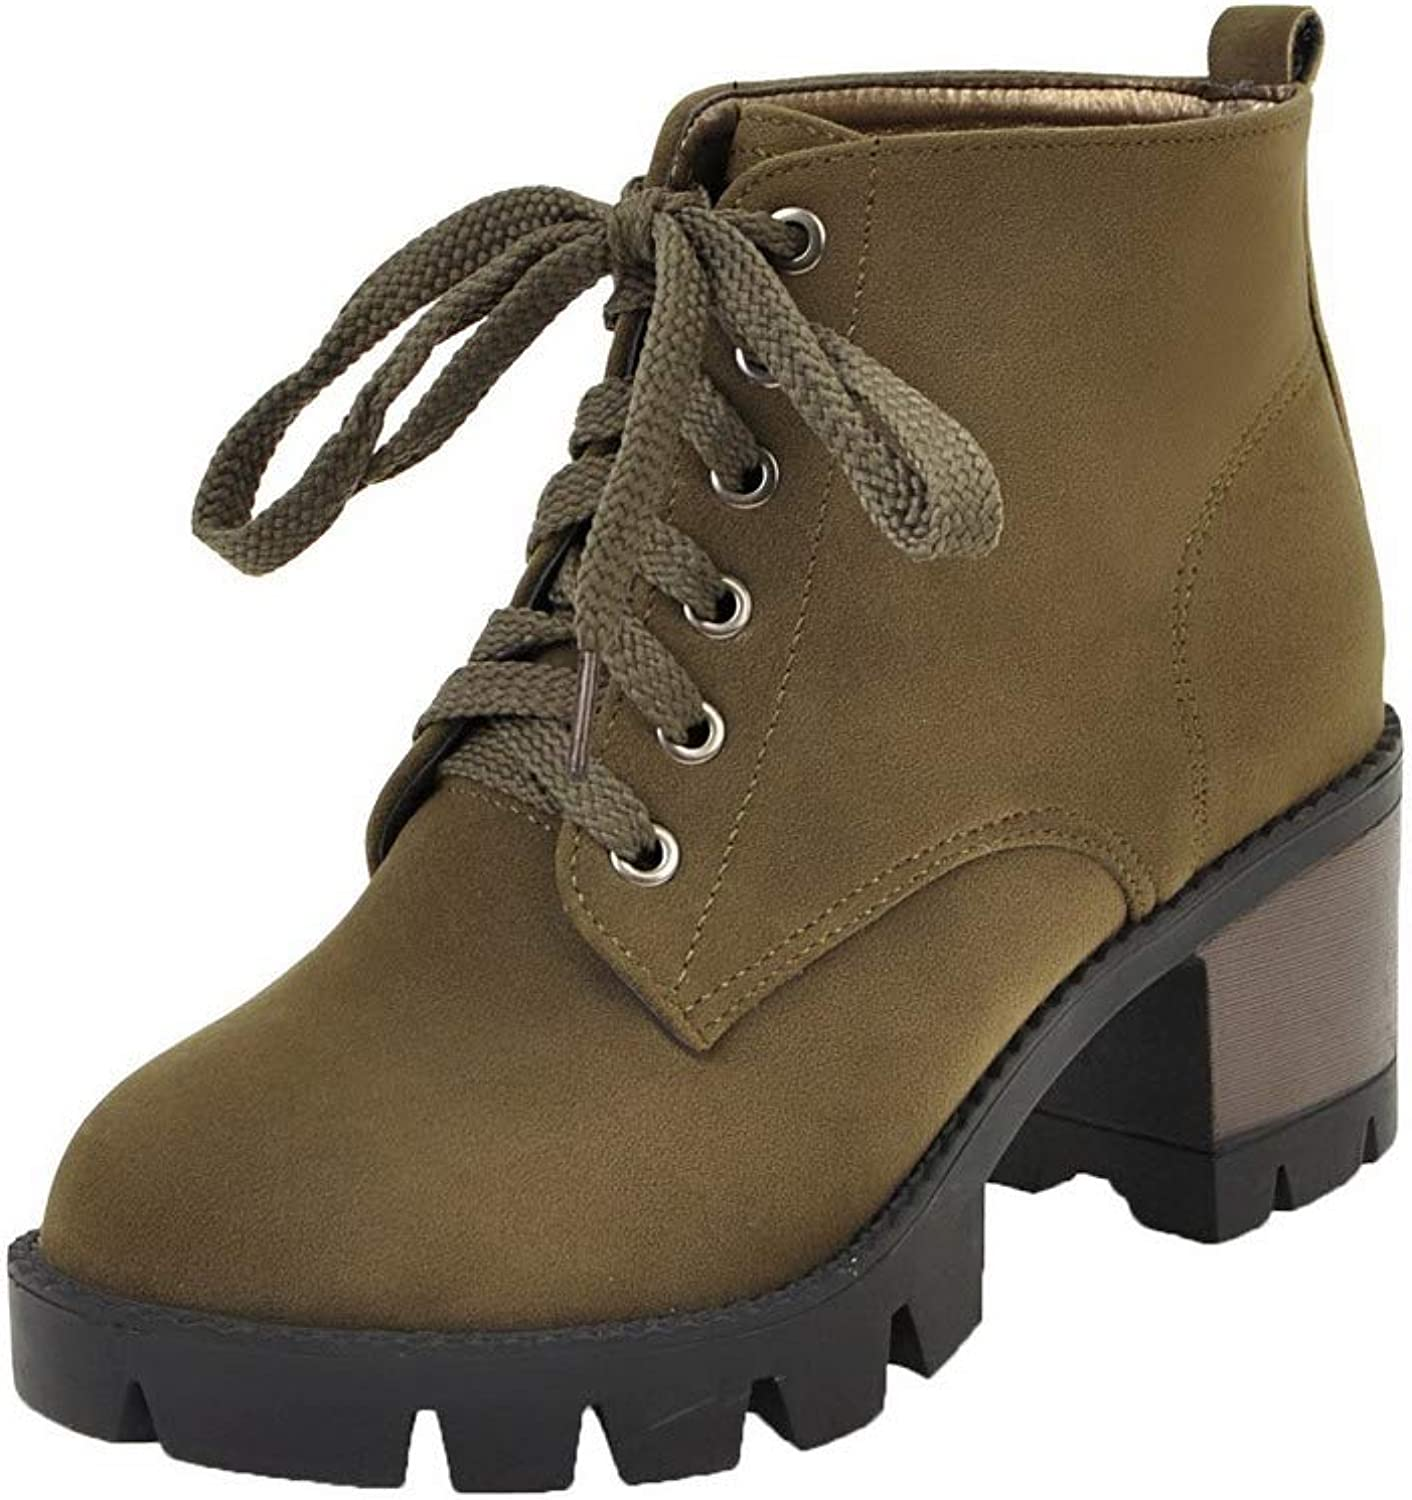 WeiPoot Women's Round-Toe Low-Top Kitten-Heels Solid Frosted Boots, EGHXH121421